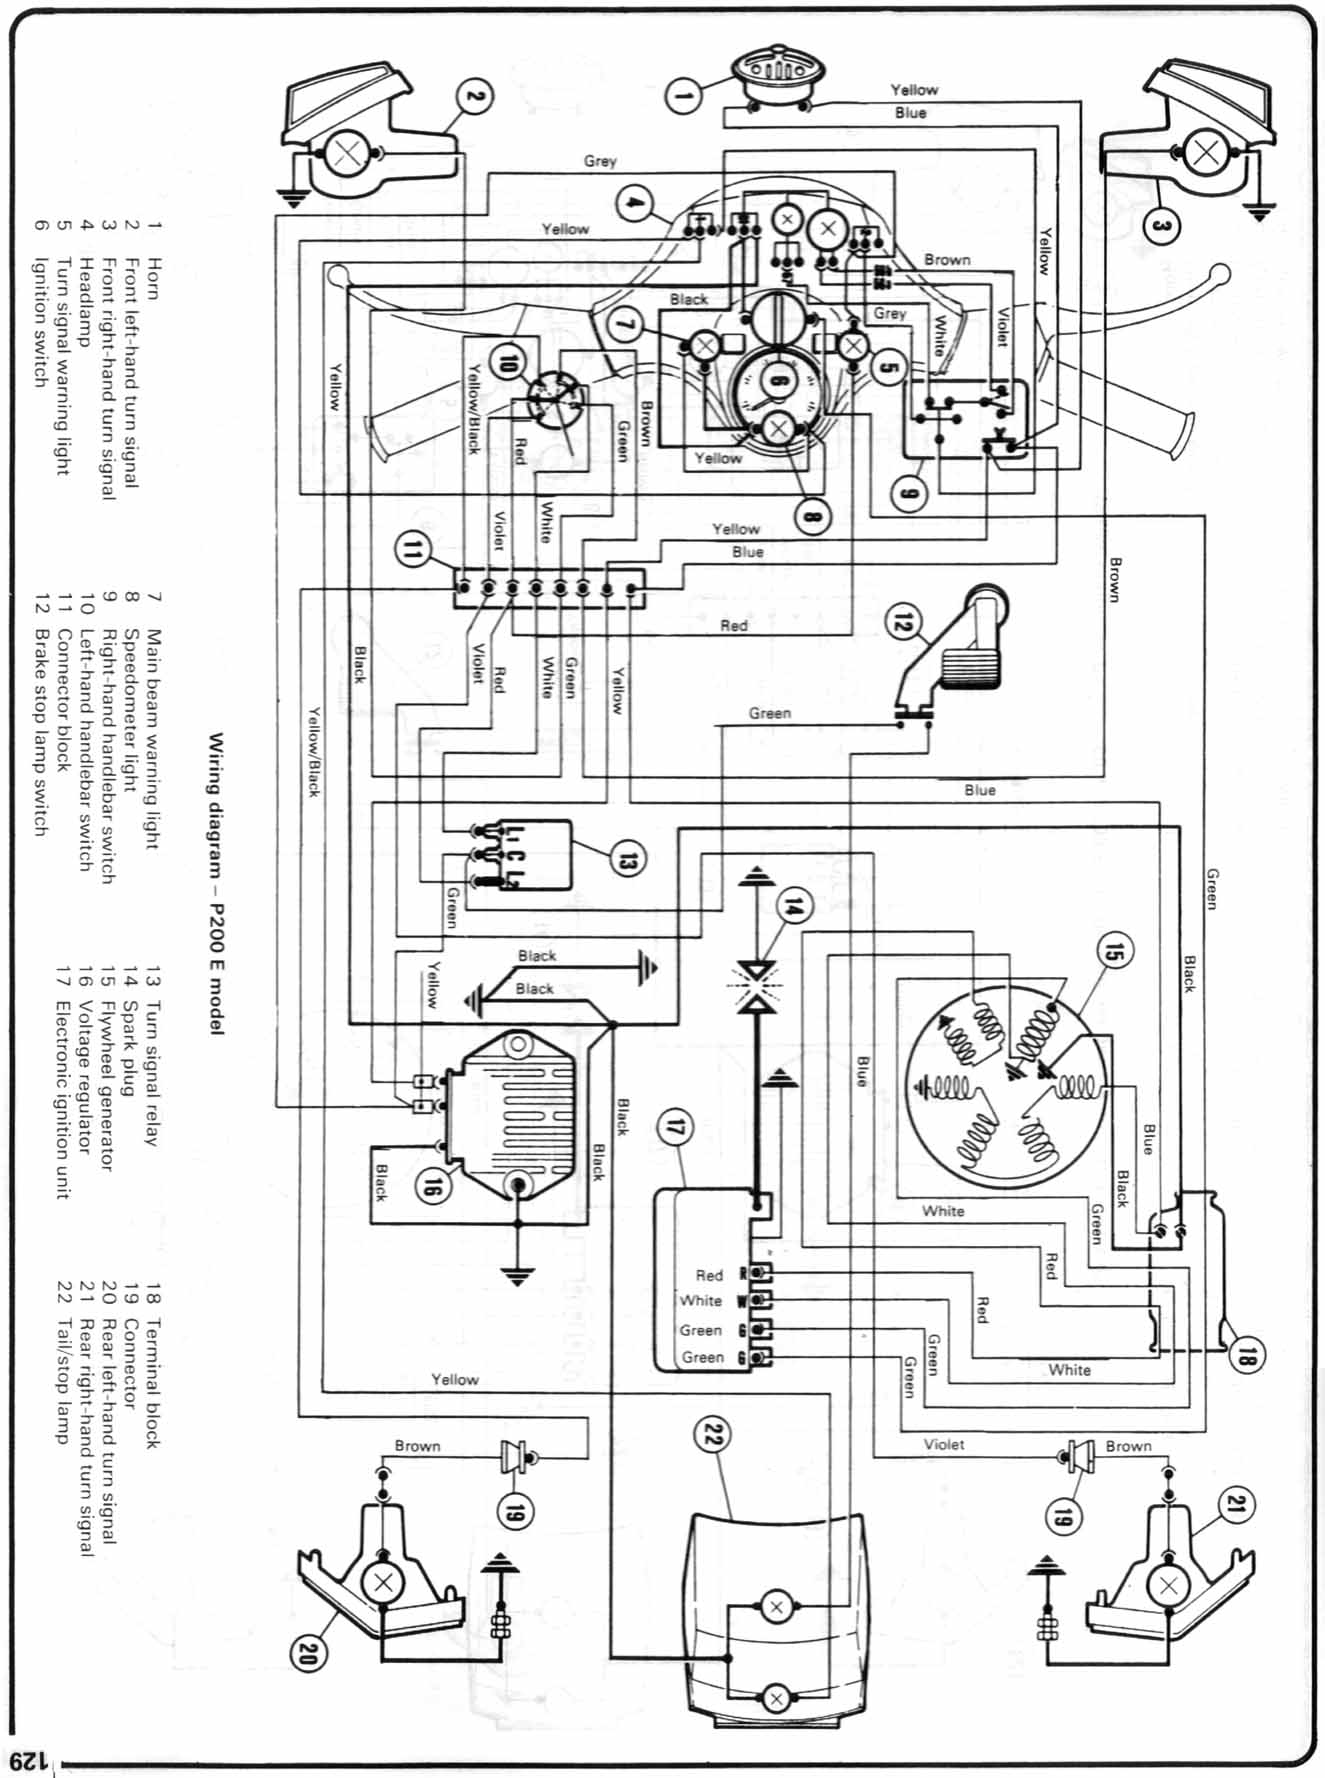 p200diag1 modern vespa seeking advice on an overly ambitious electrical vespa px 150 wiring diagram at bakdesigns.co